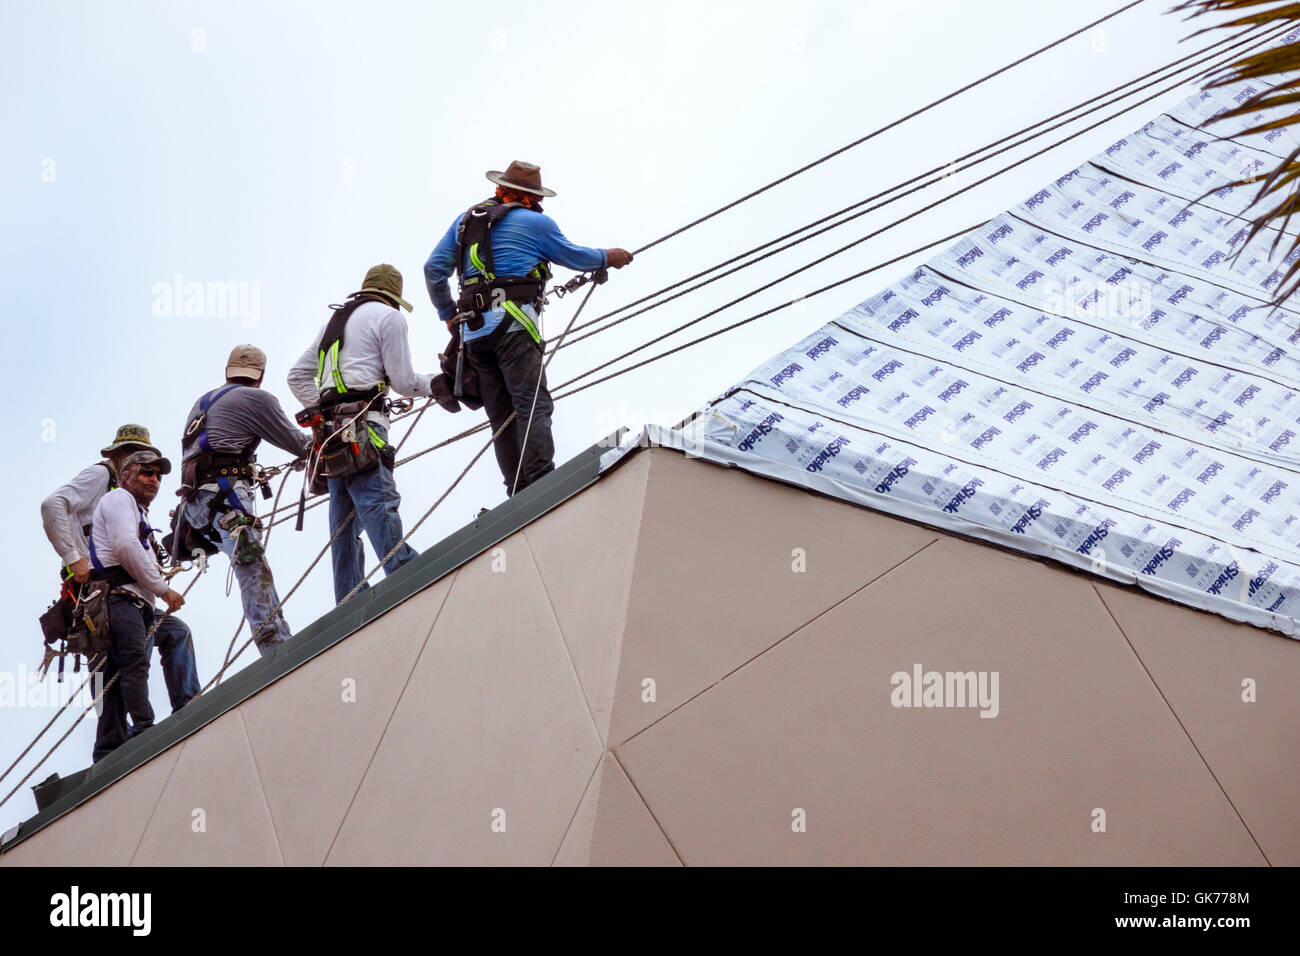 Captivating Naples Florida Artis Naples Complex Roof Repair Construction Man Laborer  Worker Safety Personal Protective Equipment PPE Lifeline Harness Rappelling  S